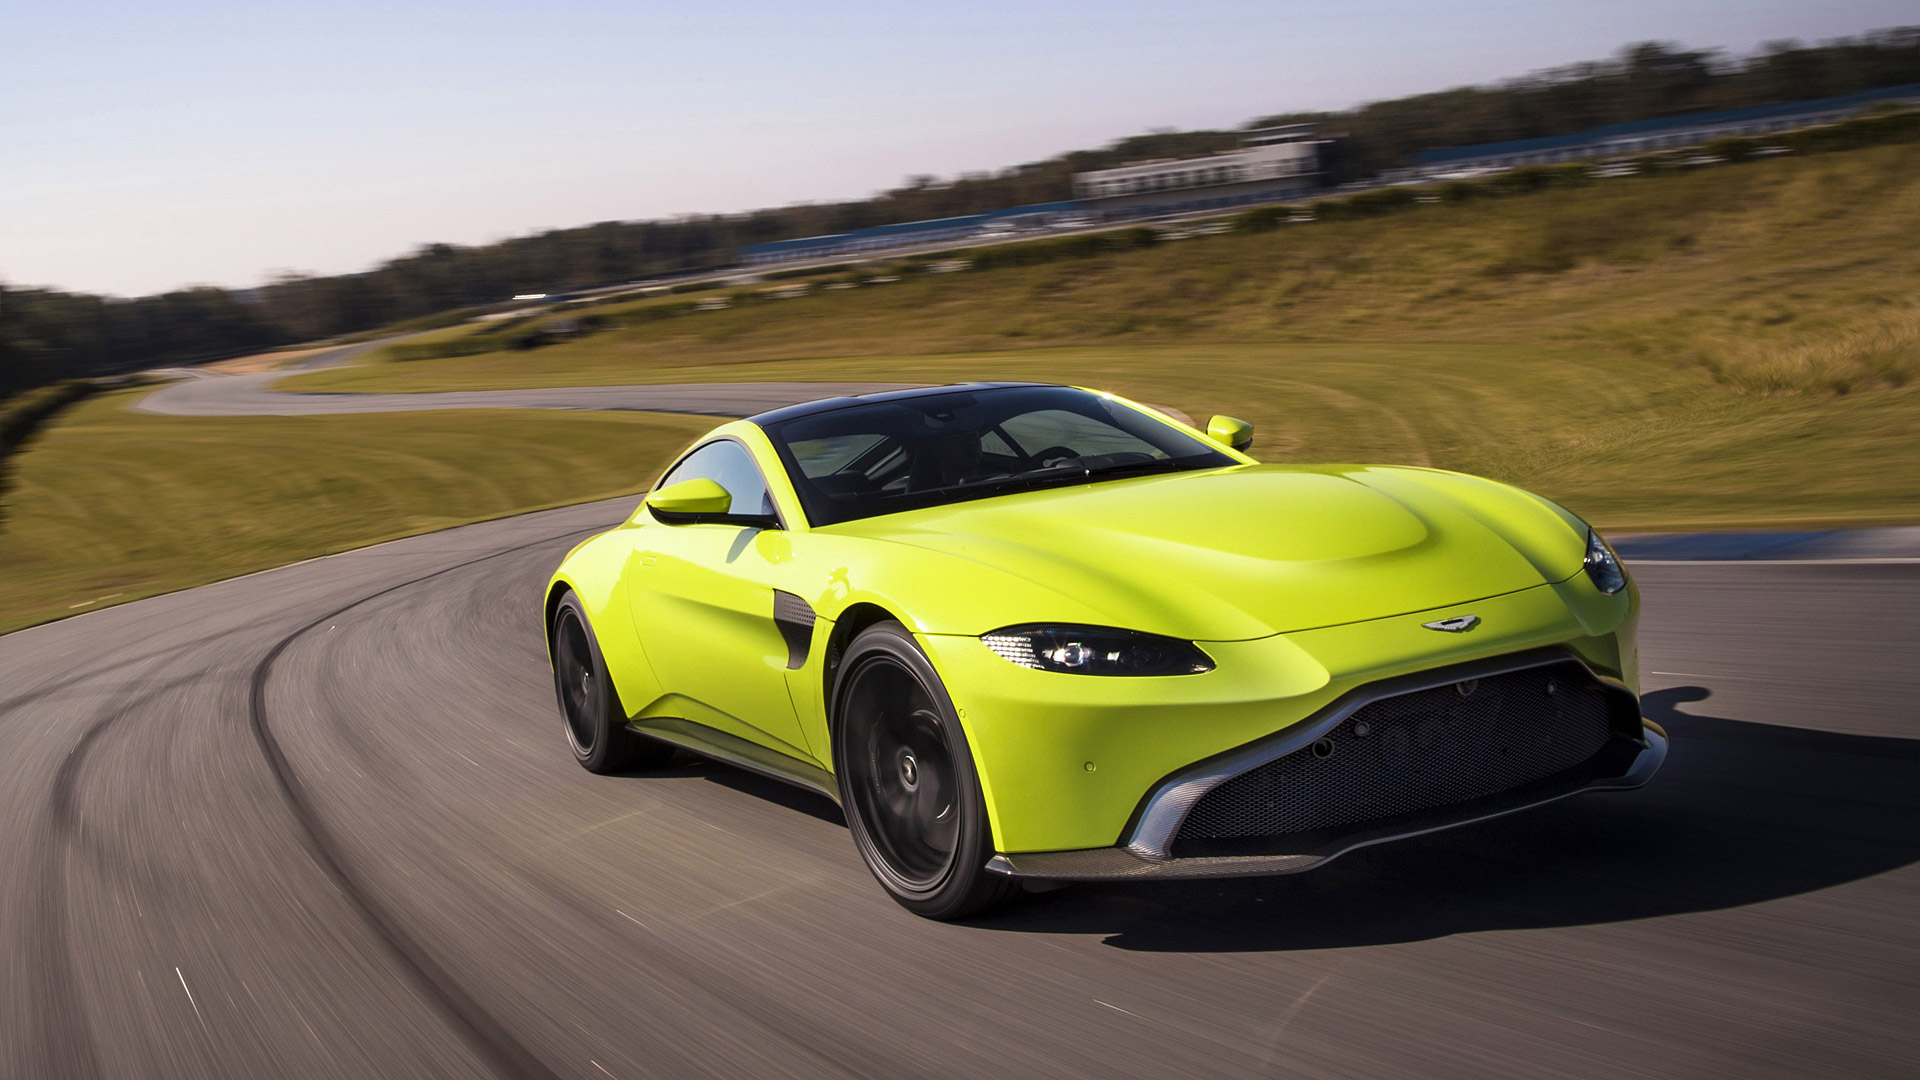 Free Download 2019 Aston Martin Vantage Wallpapers Hd Images Wsupercars 1920x1080 For Your Desktop Mobile Tablet Explore 33 Aston Martin Vantage Wallpapers Aston Martin Vantage Wallpapers Aston Martin V8